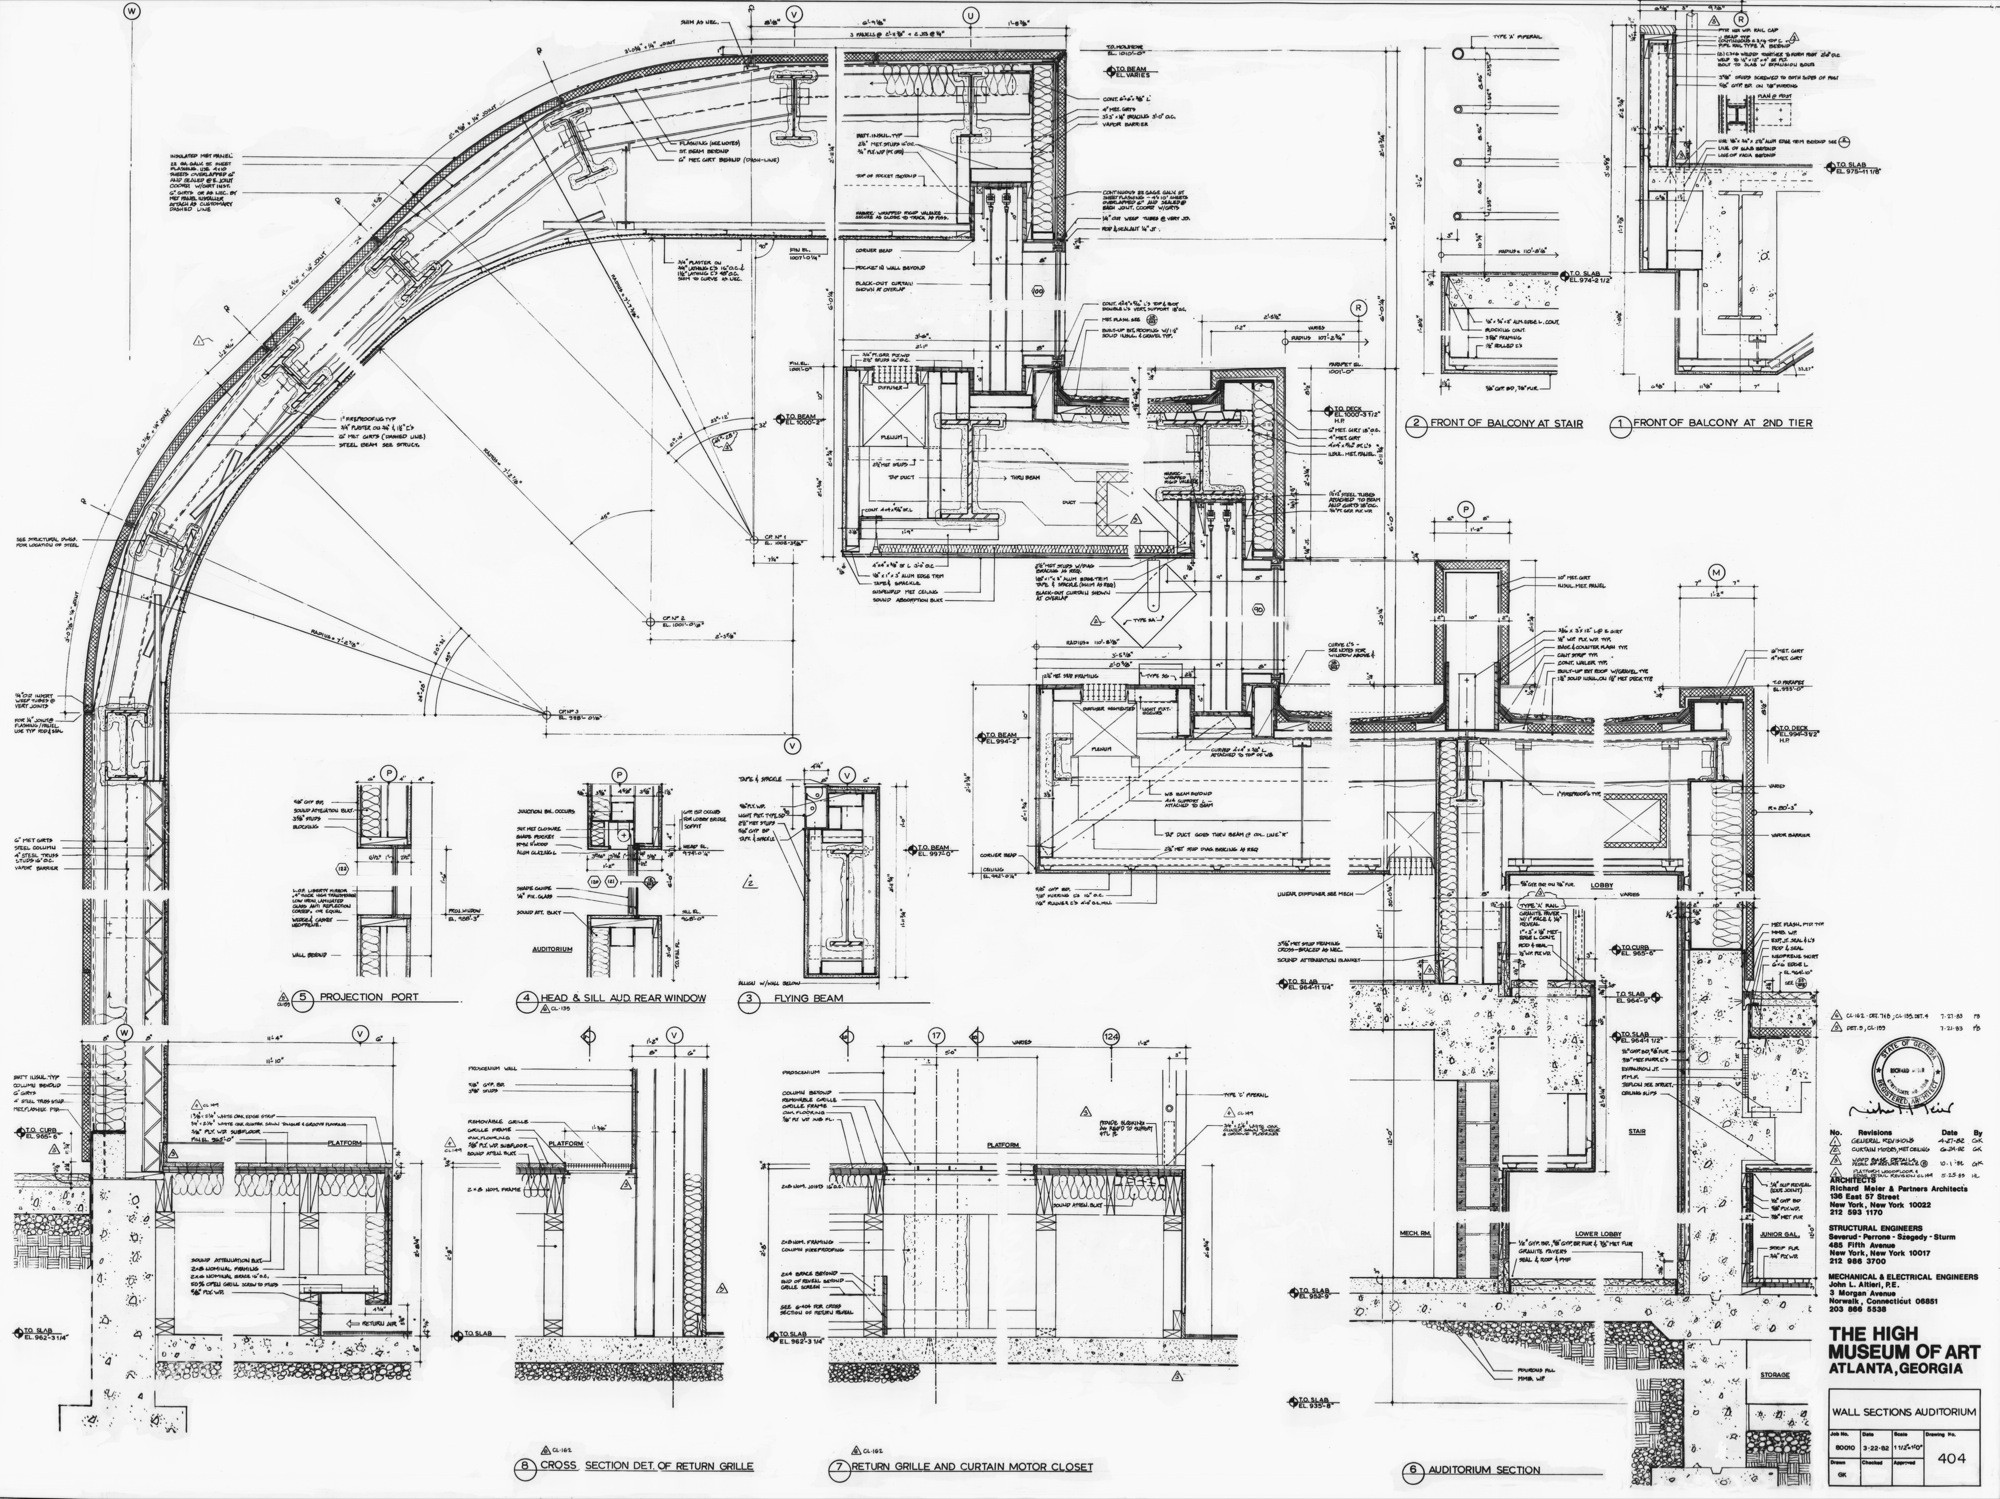 Gallery of ad classics high museum of art richard meier for Architecture plan drawing